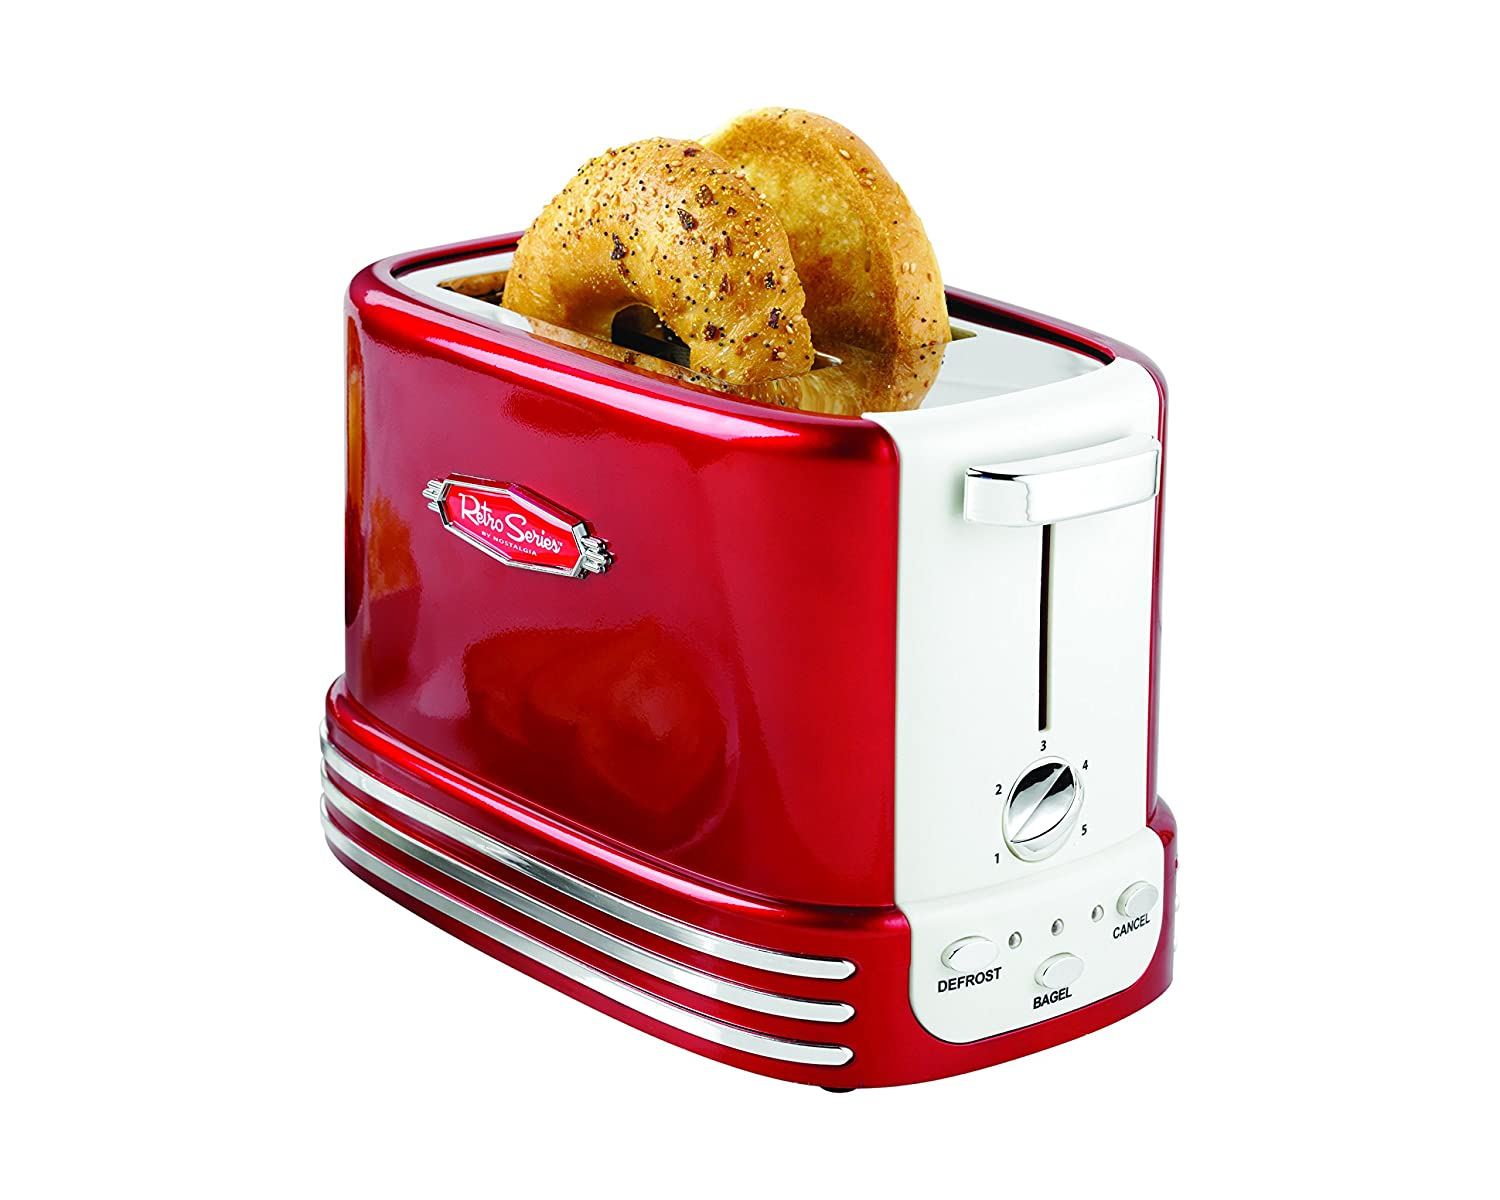 Nostalgia RTOS200 New and Improved Wide 2-Slice Toaster, Perfect For Bread, English Muffins, Bagels, 5 Browning Levels, With Crumb Tray Cord Storage Retro Red